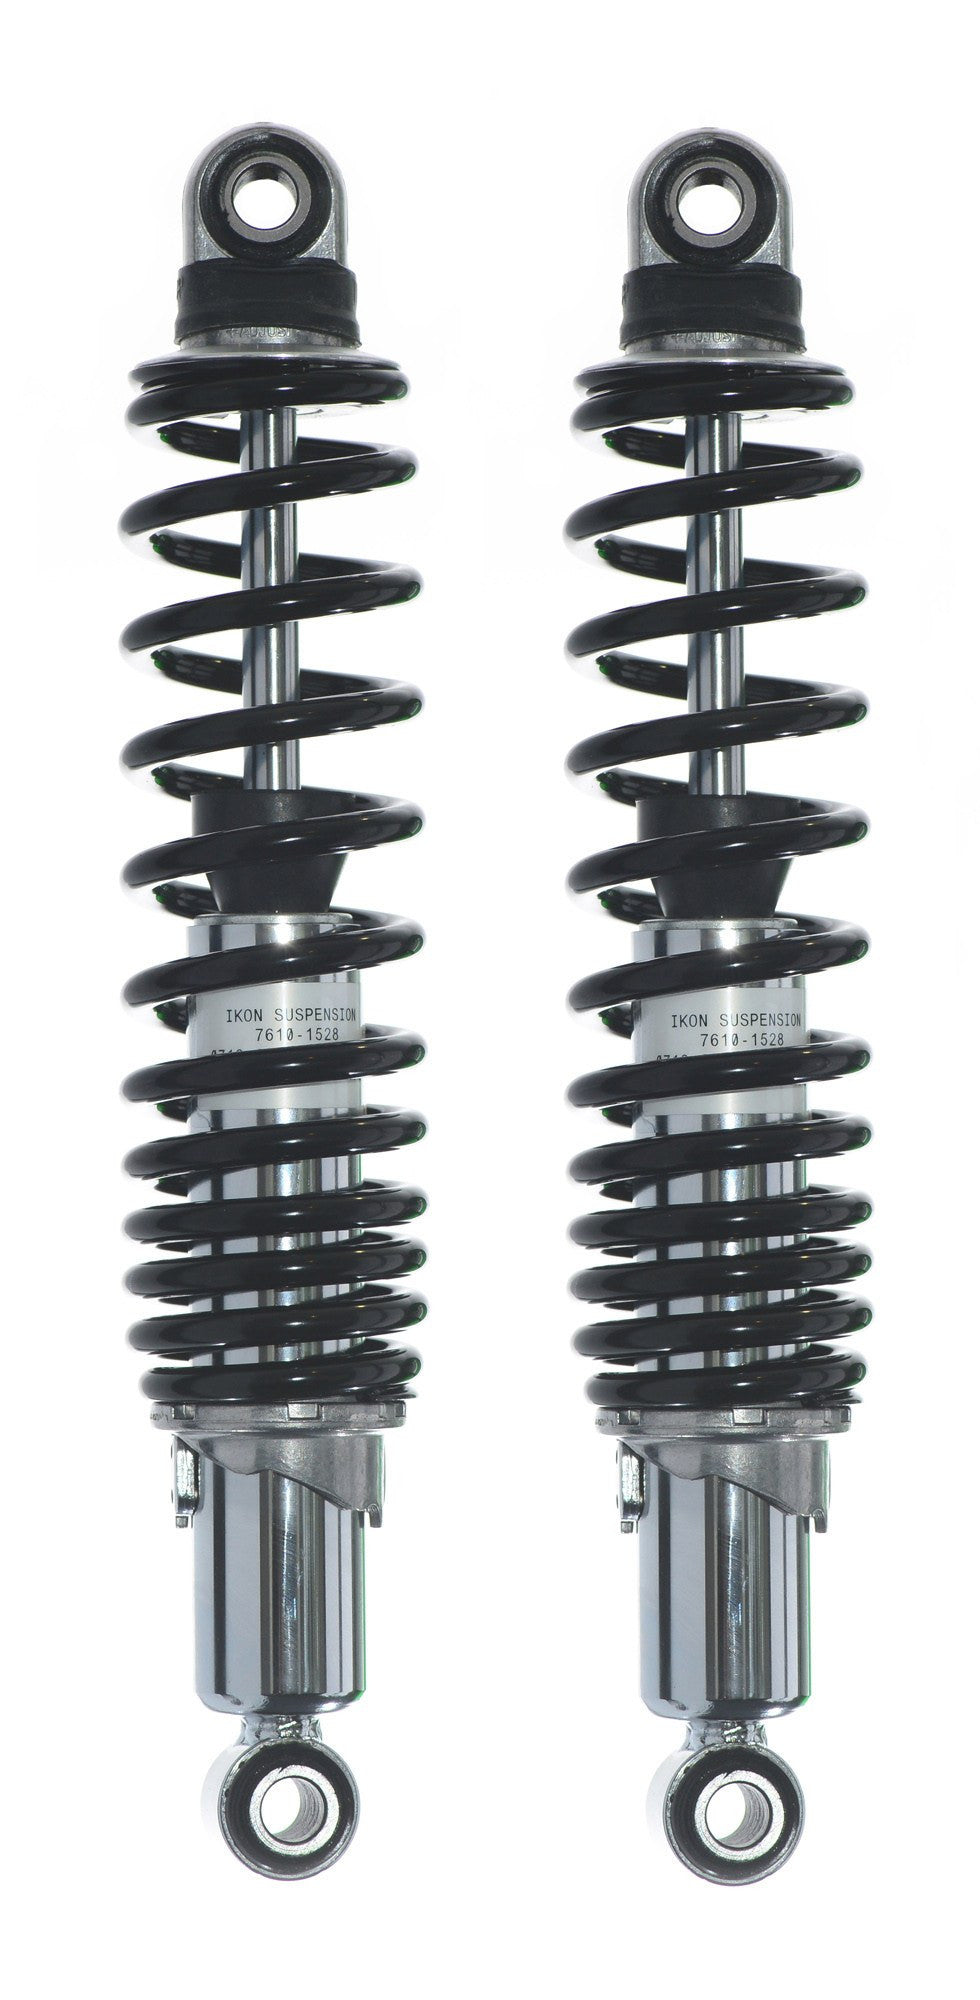 7610-1687 CUSTOM Shock Absorber